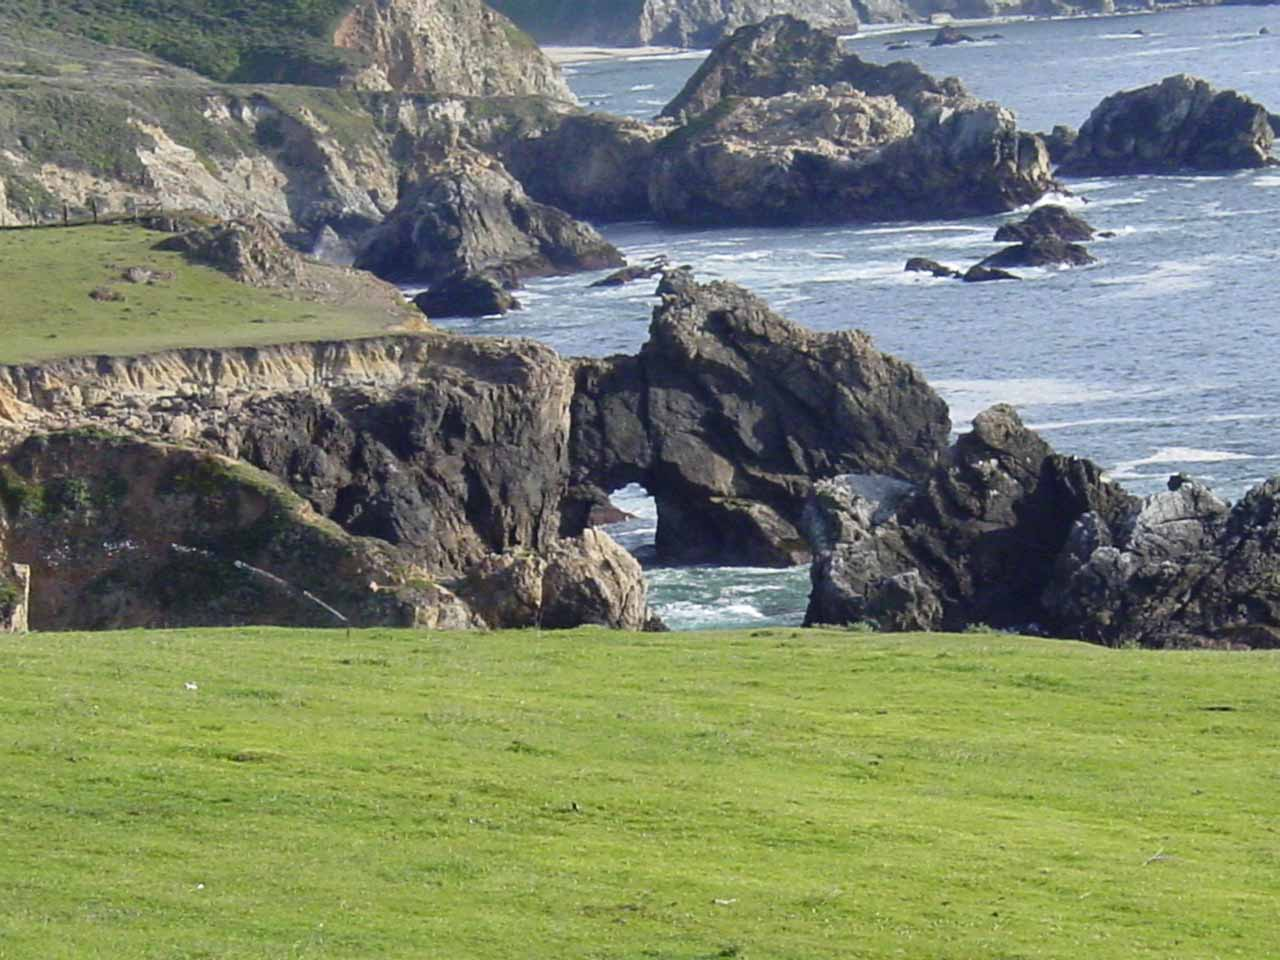 Not far from Julia Pfeiffer Burns State Park is a stretch of lovely coastline including this distant but pretty sea arch